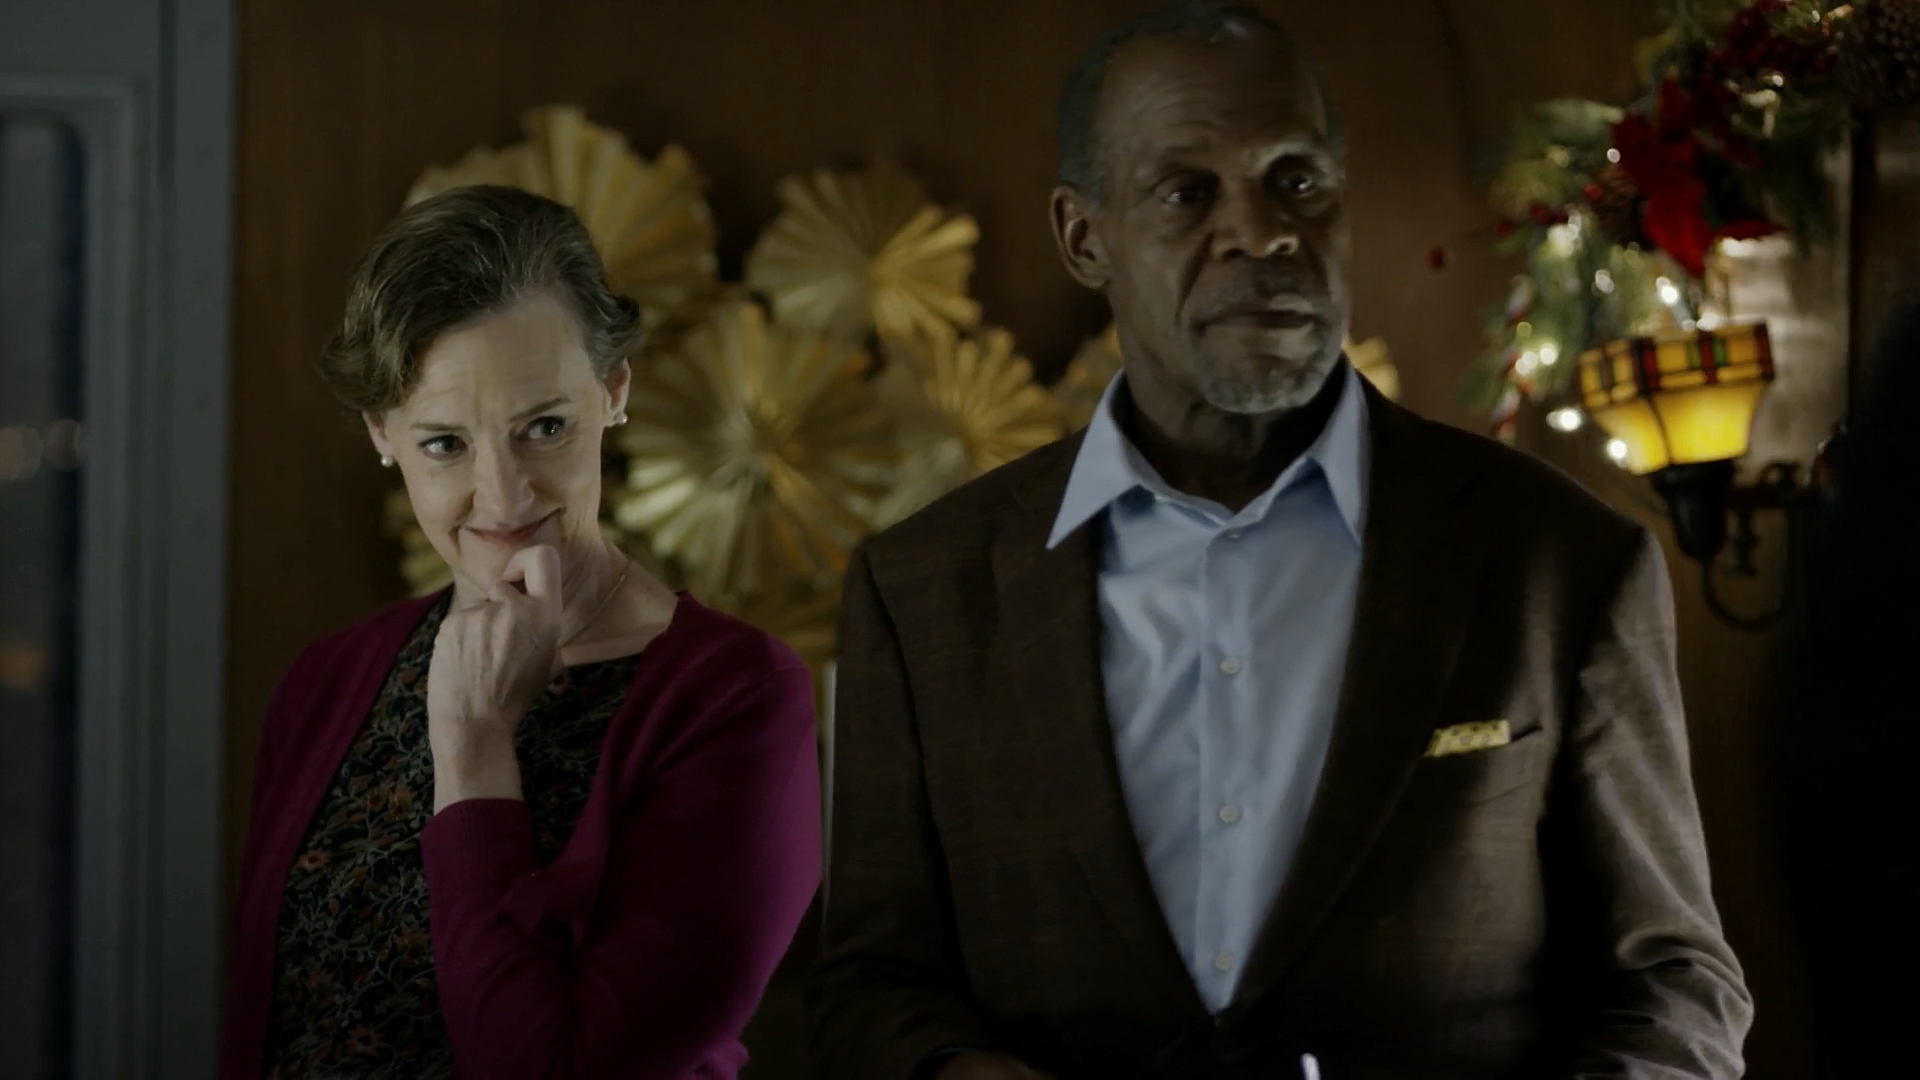 Joan Cusack and Danny Glover in The Christmas Train (2017)